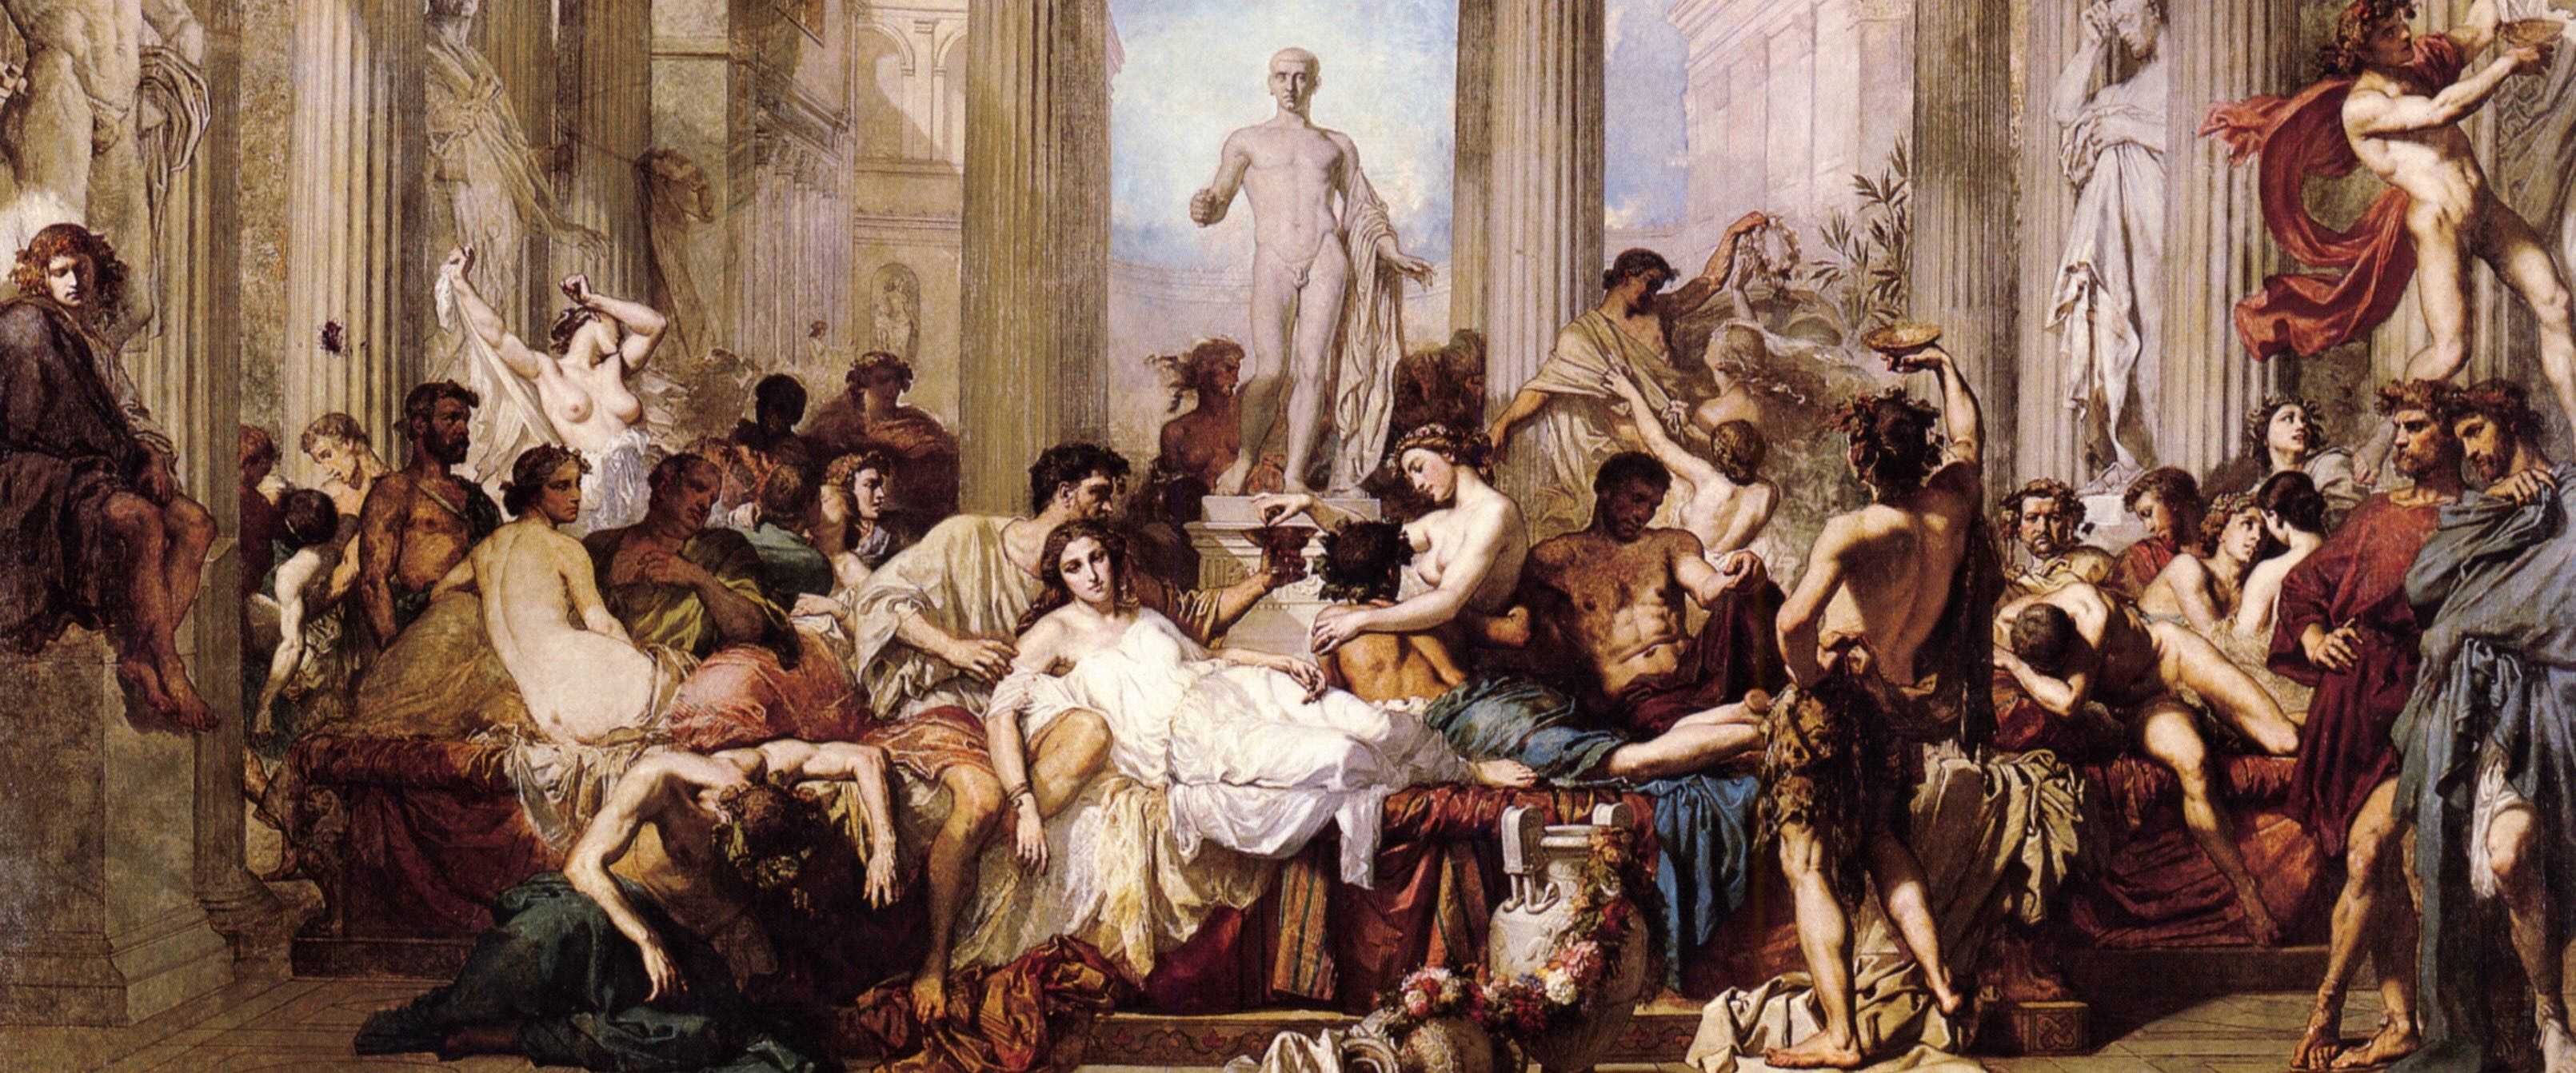 saturnalia is a ancient holisay in ancien rome